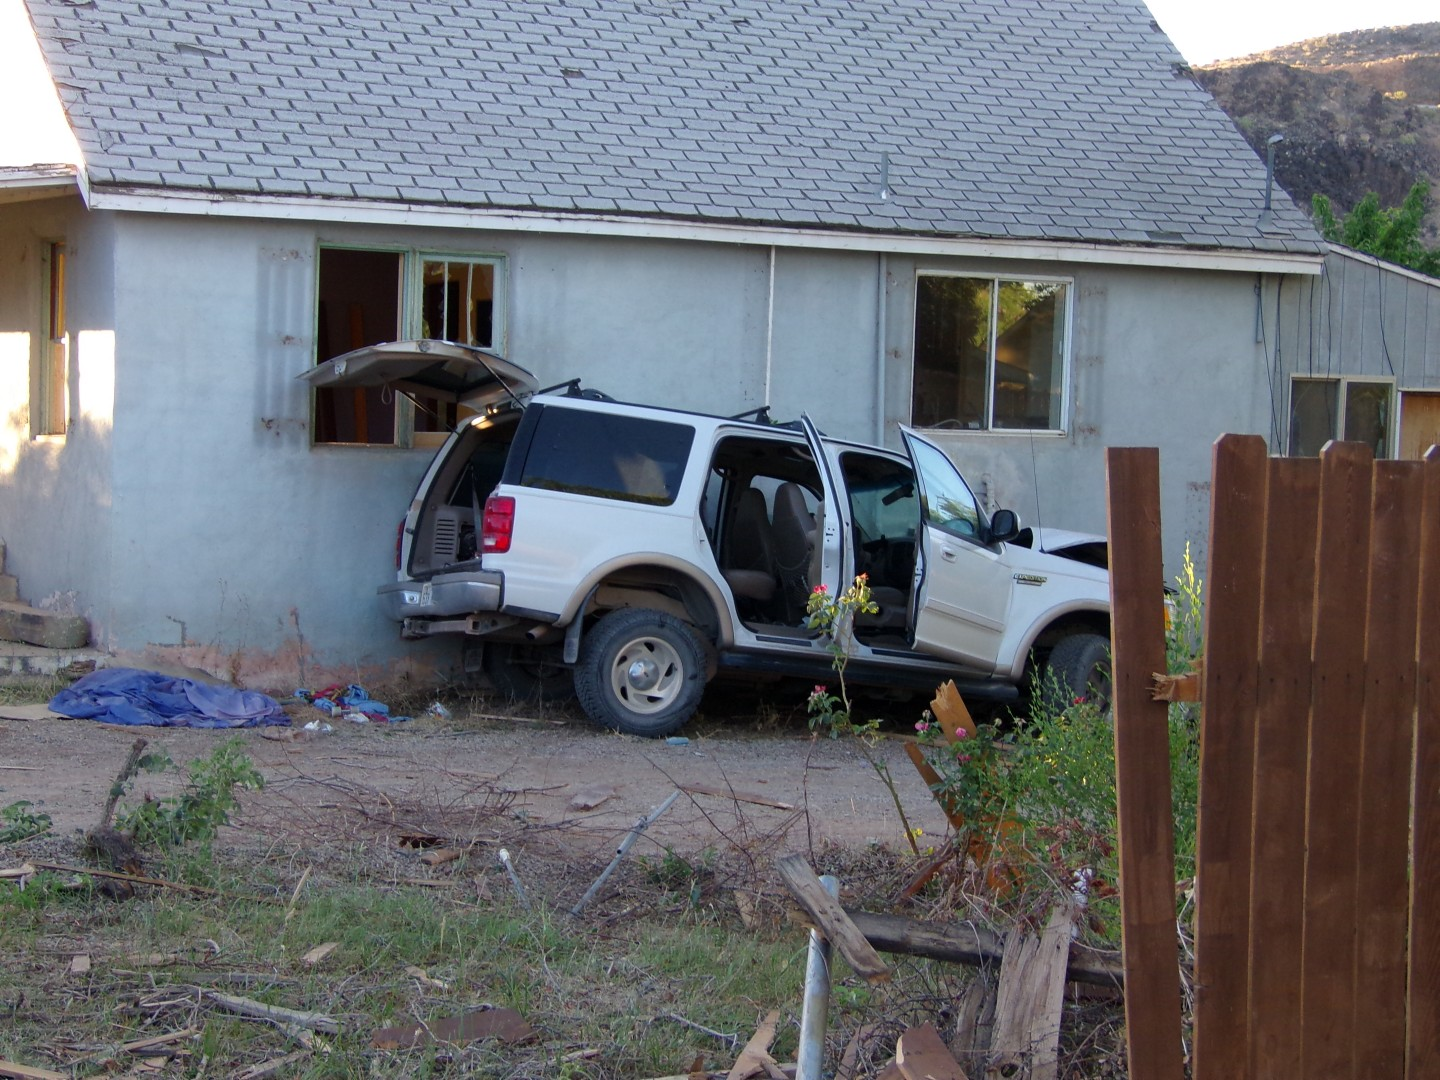 Abandoned vehicle at 150 East 600 North, after driver crashed through the fence and against the house. Hurricane, Utah, June 26, 2013 | Photo by Christina DeMille, St. George News